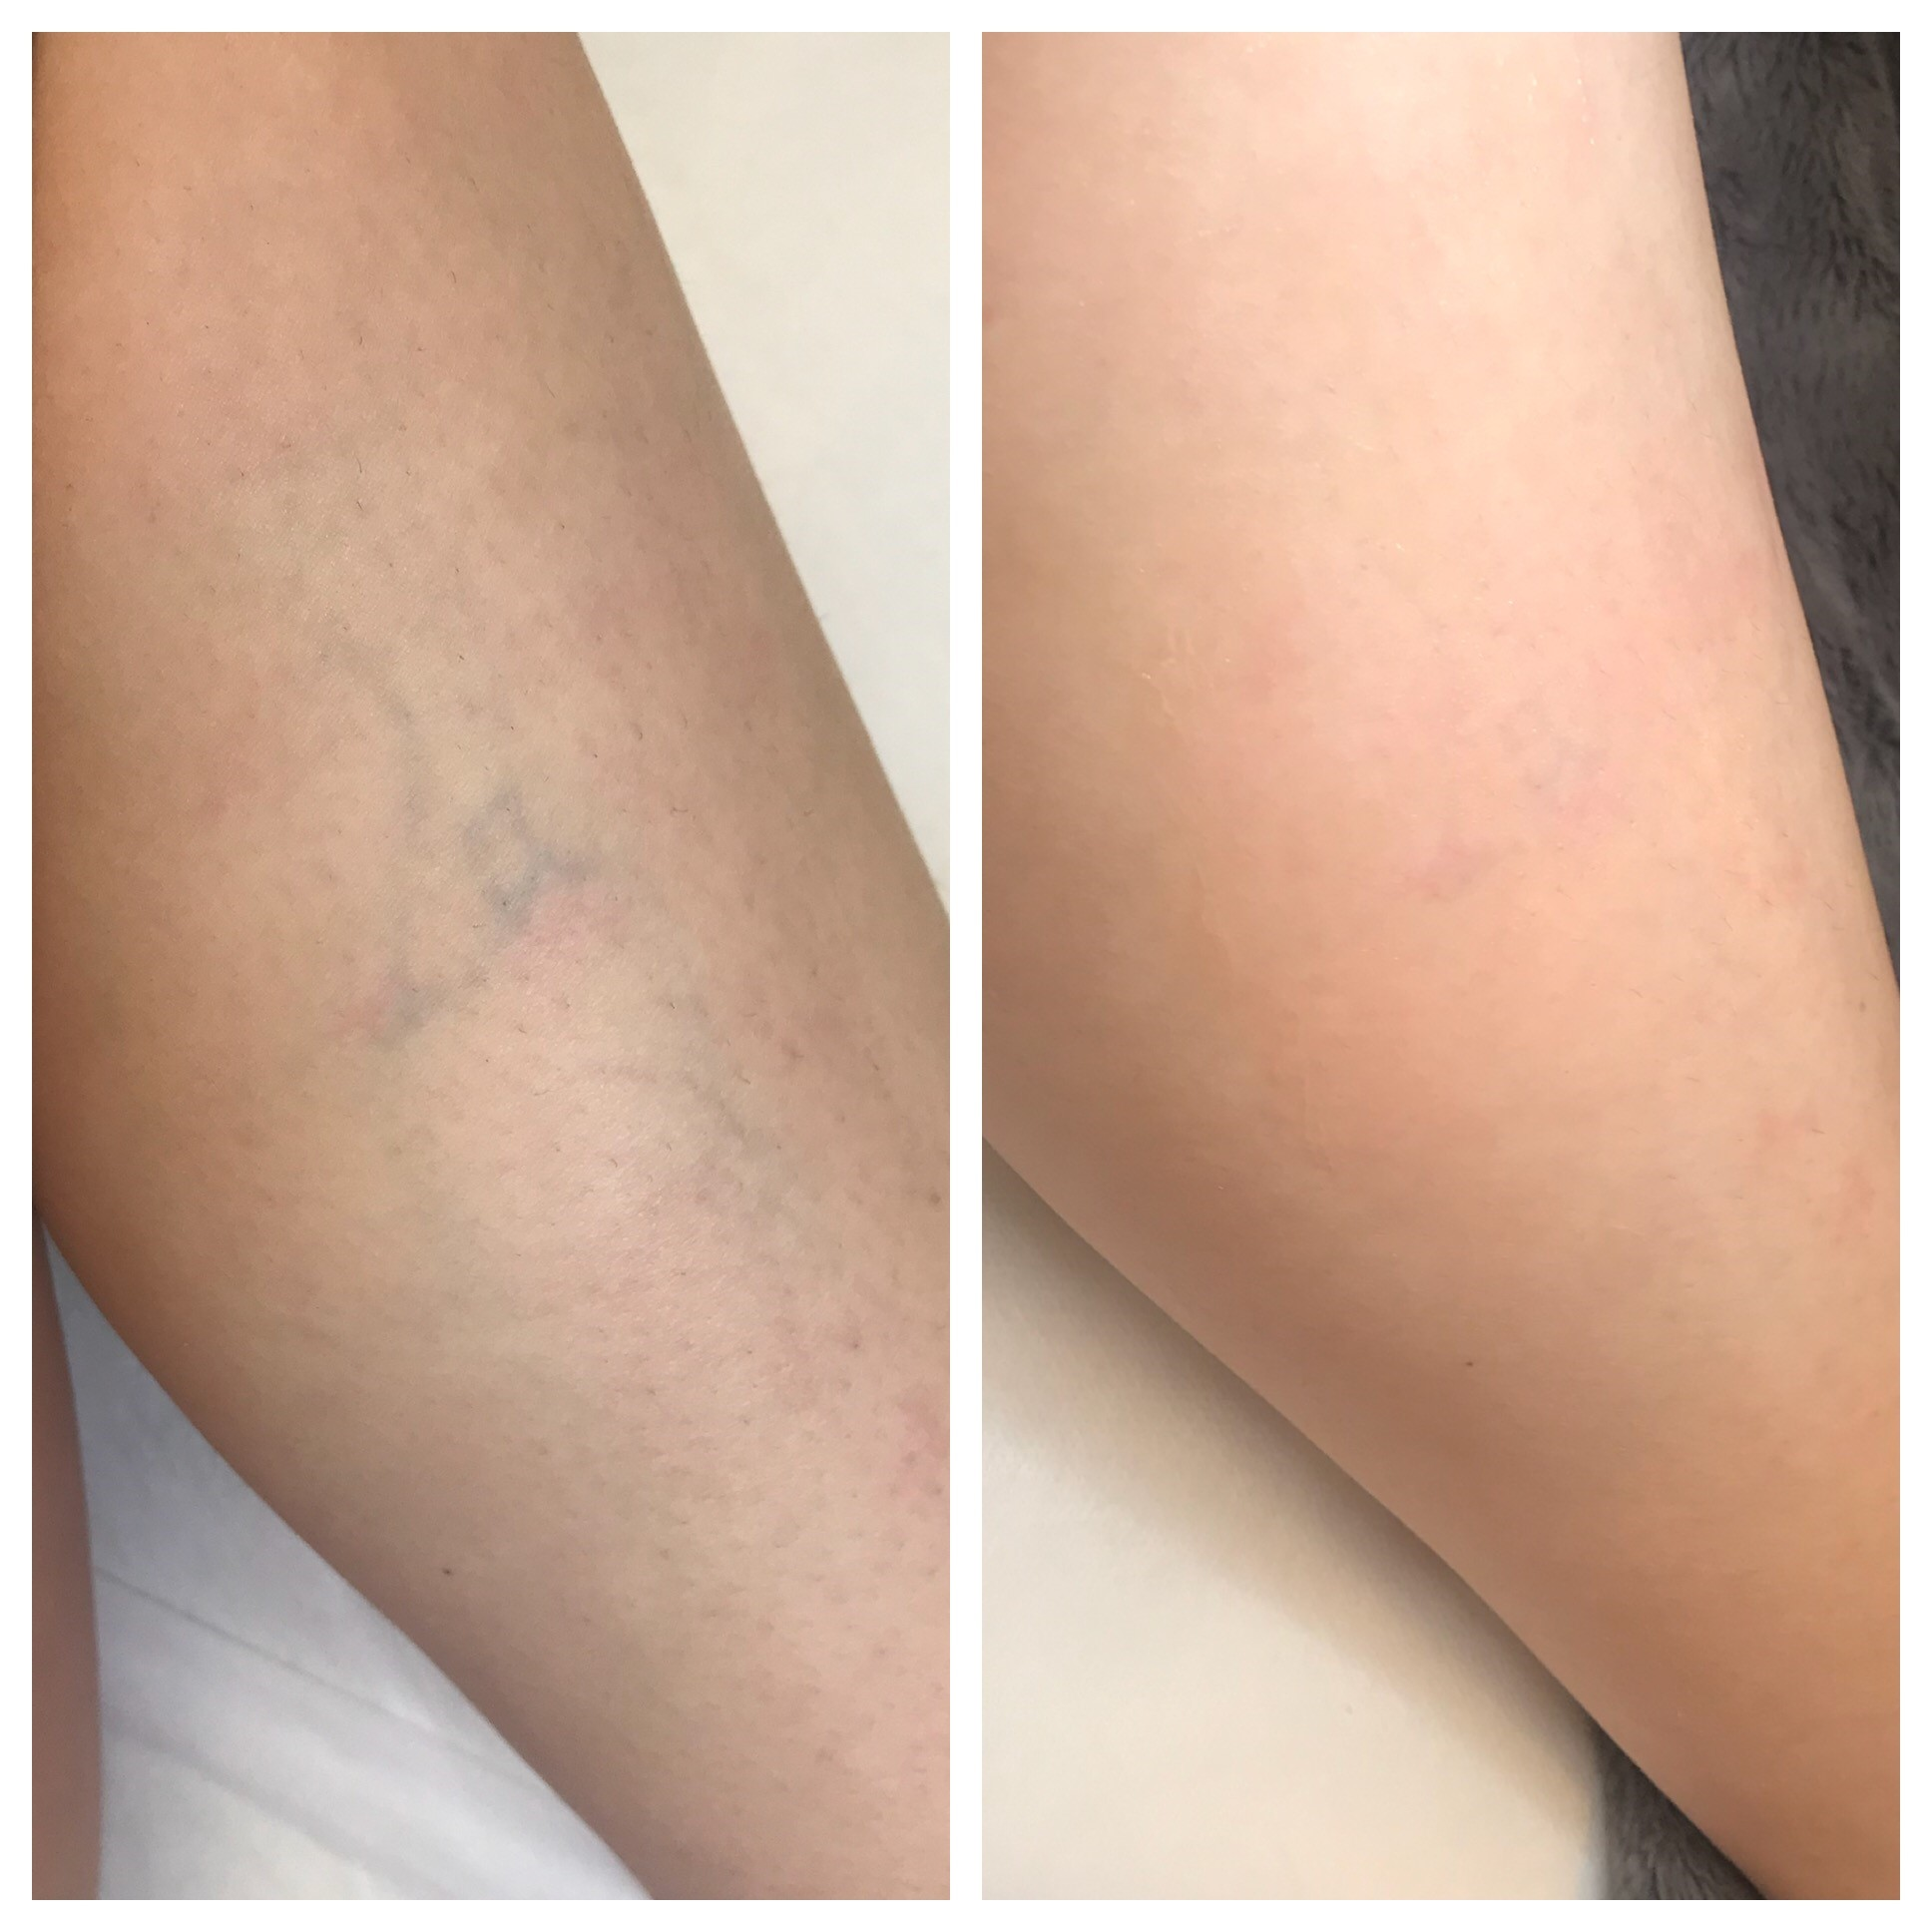 I Got a Laser Treatment for My Spider Veins and this is What Happened